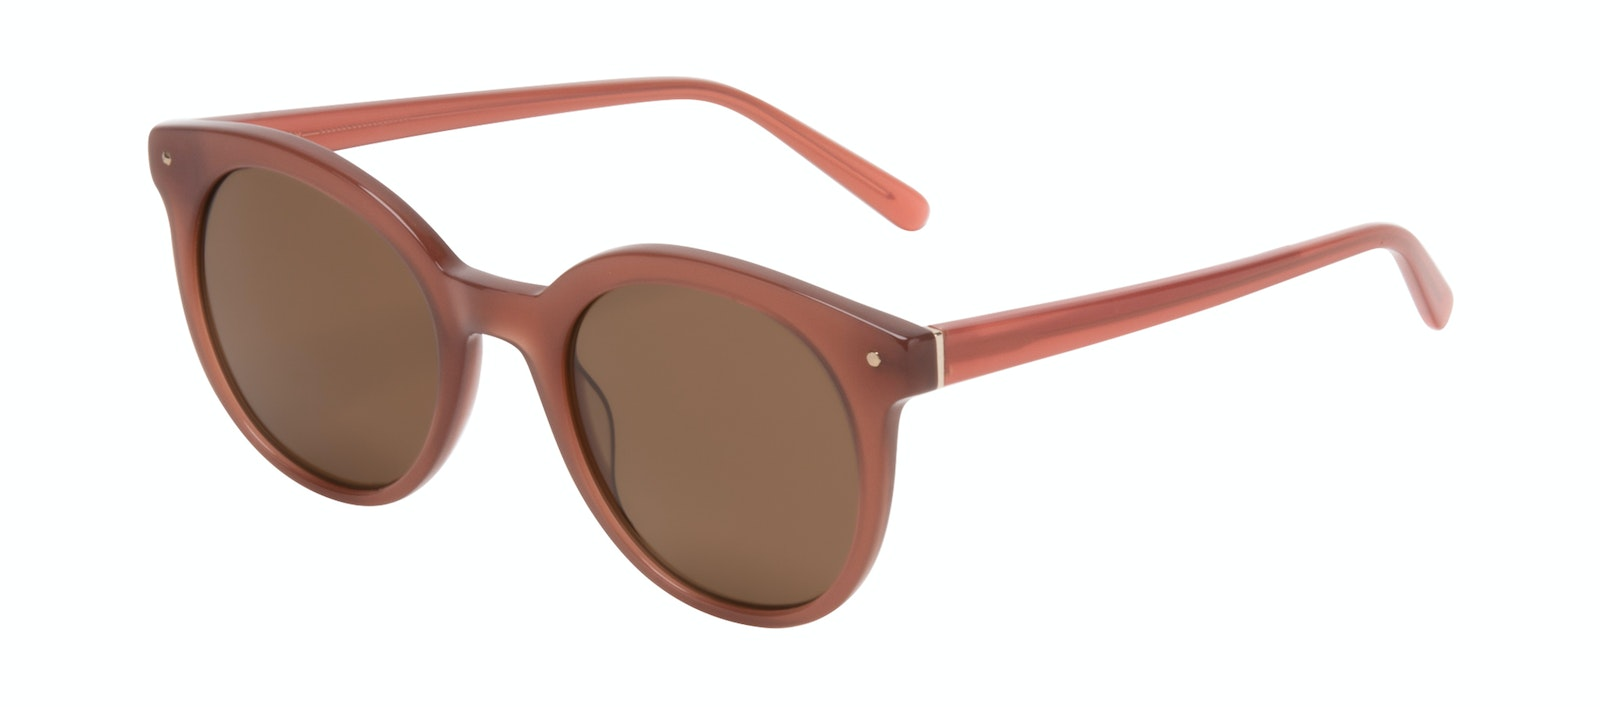 Affordable Fashion Glasses Round Sunglasses Women Hip Toffee Tilt